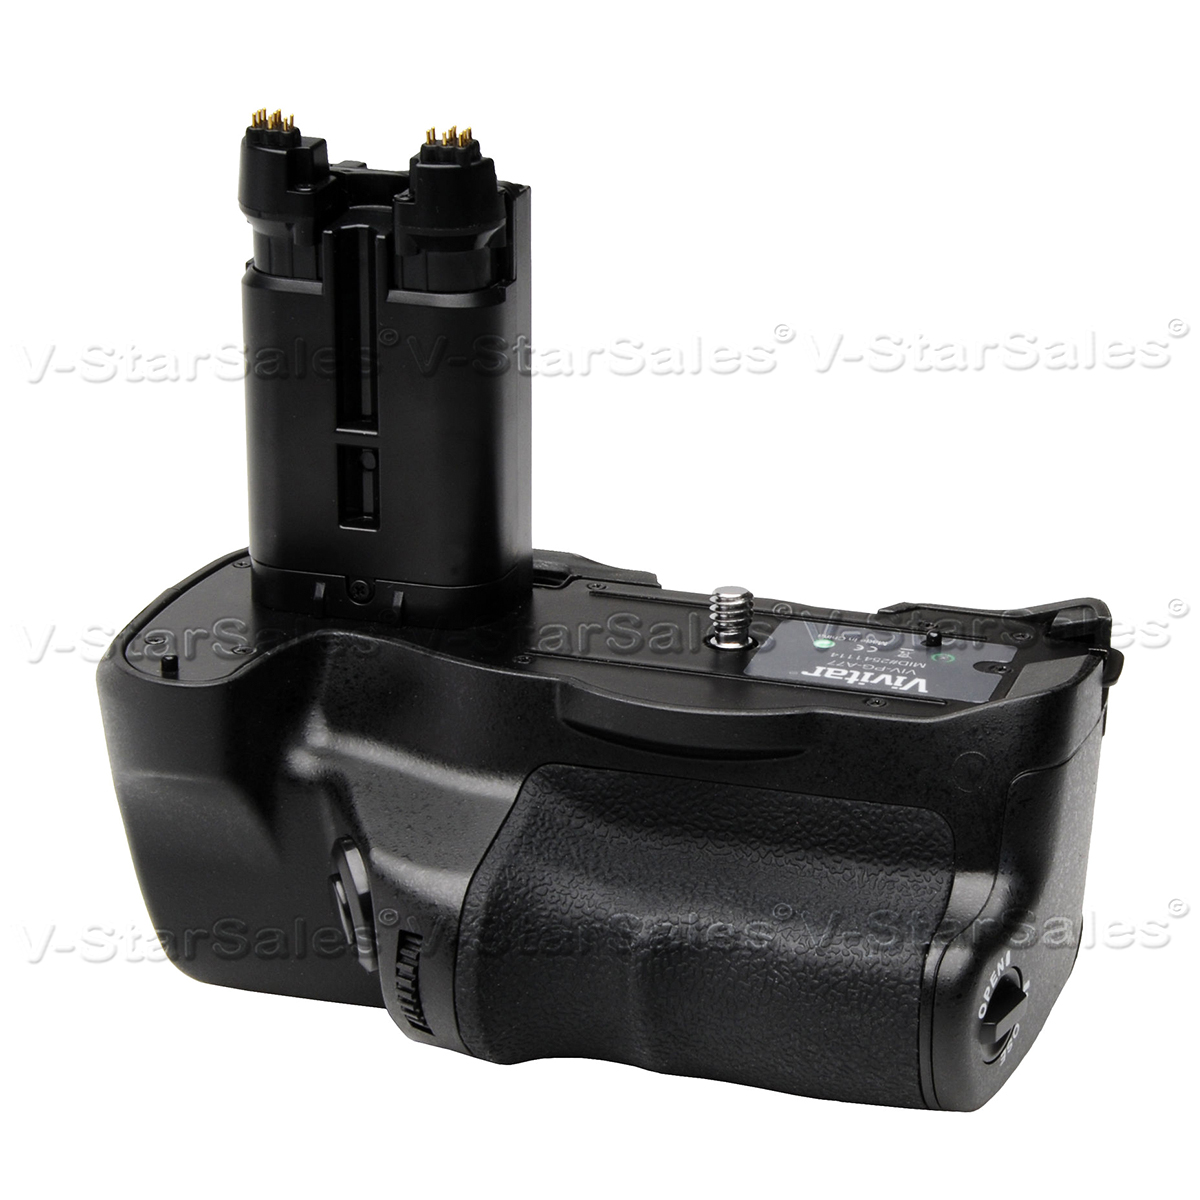 vivitar vg c77am pro multi power battery grip for sony a77. Black Bedroom Furniture Sets. Home Design Ideas